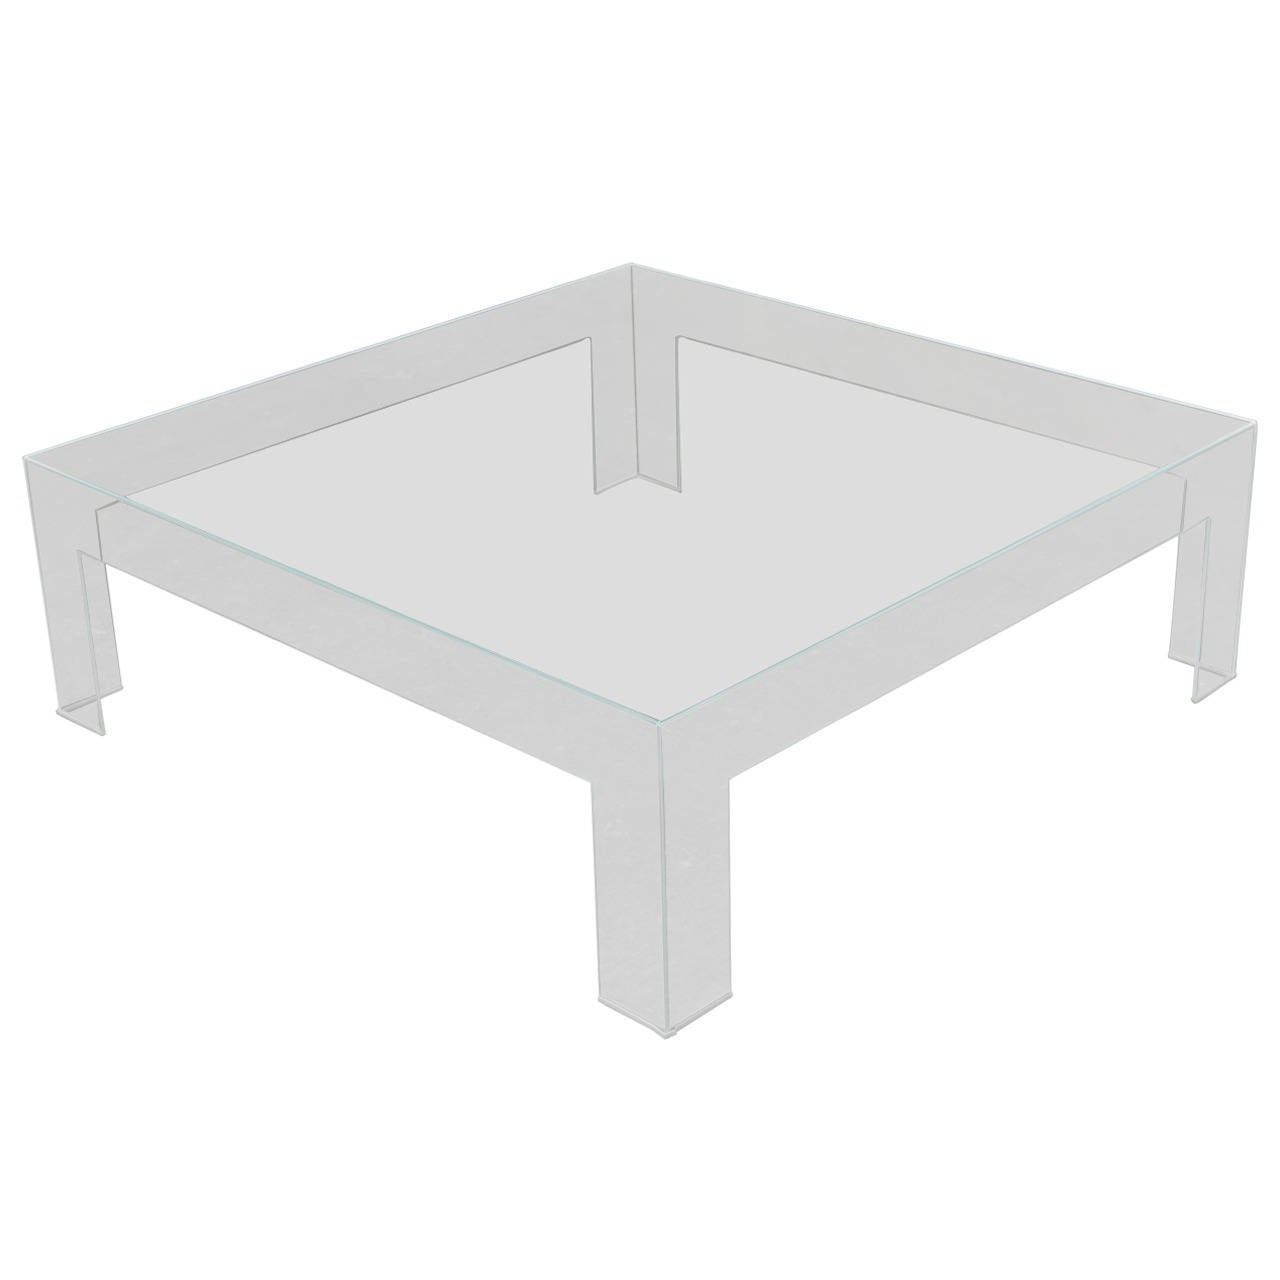 Modern Square Lucite Ghost Coffee Table 1 - Modern Square Lucite Ghost Coffee Table At 1stdibs